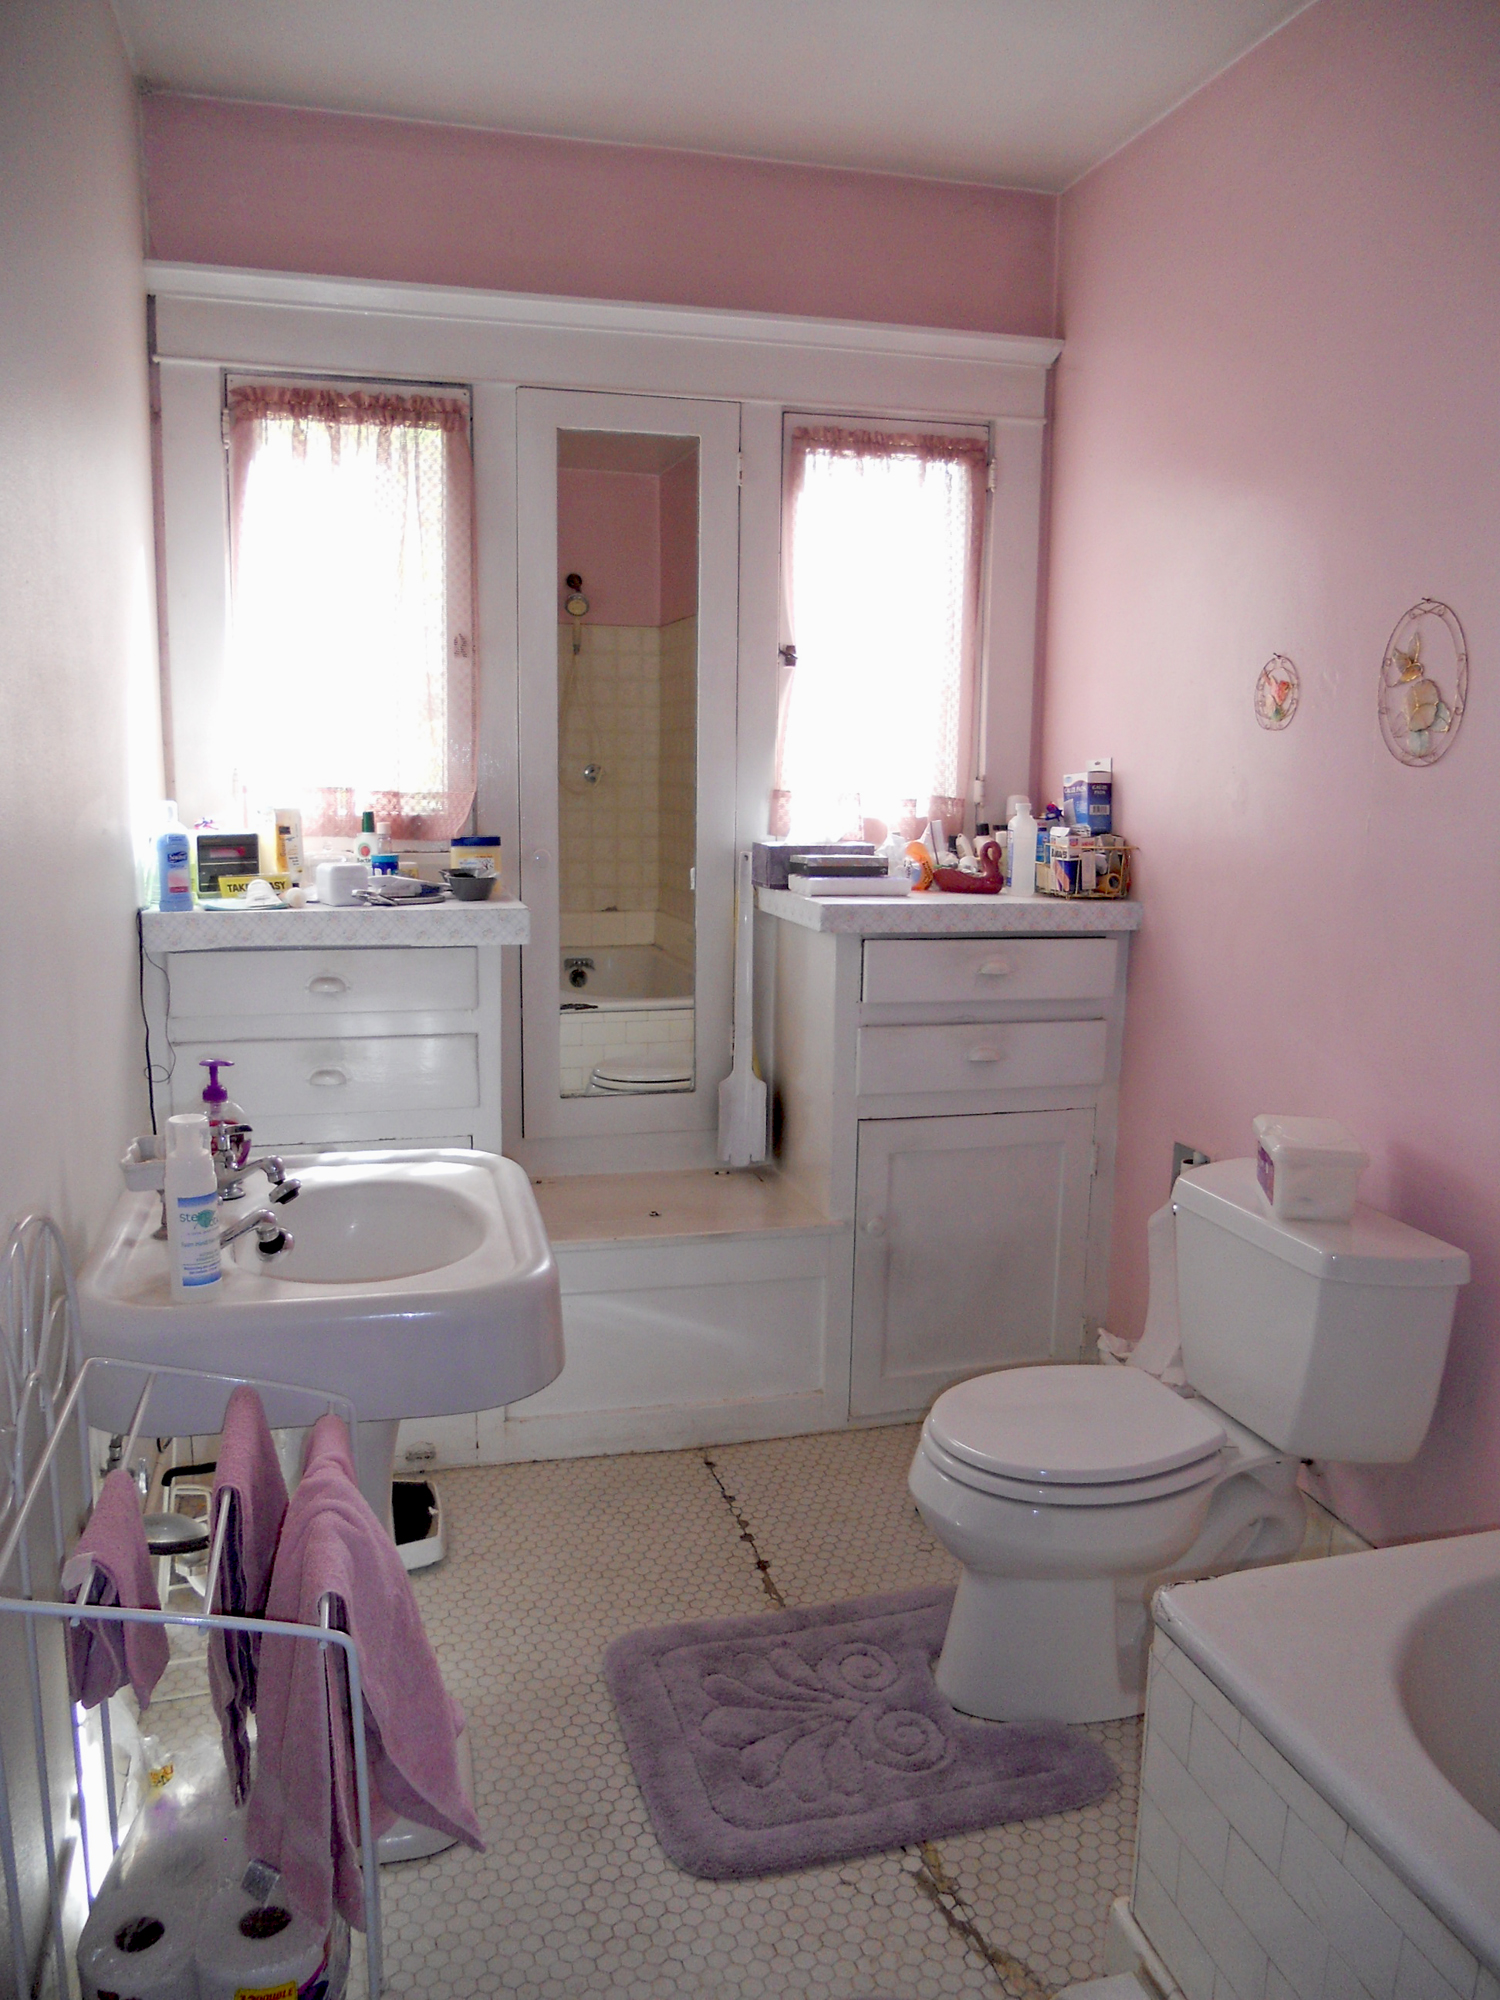 The main bathroom with built-ins, pedestal sink and original tub. The original tile floor has some cracking, but there are wonderful Riverside artisans who can replace this flooring to match the original tiles.